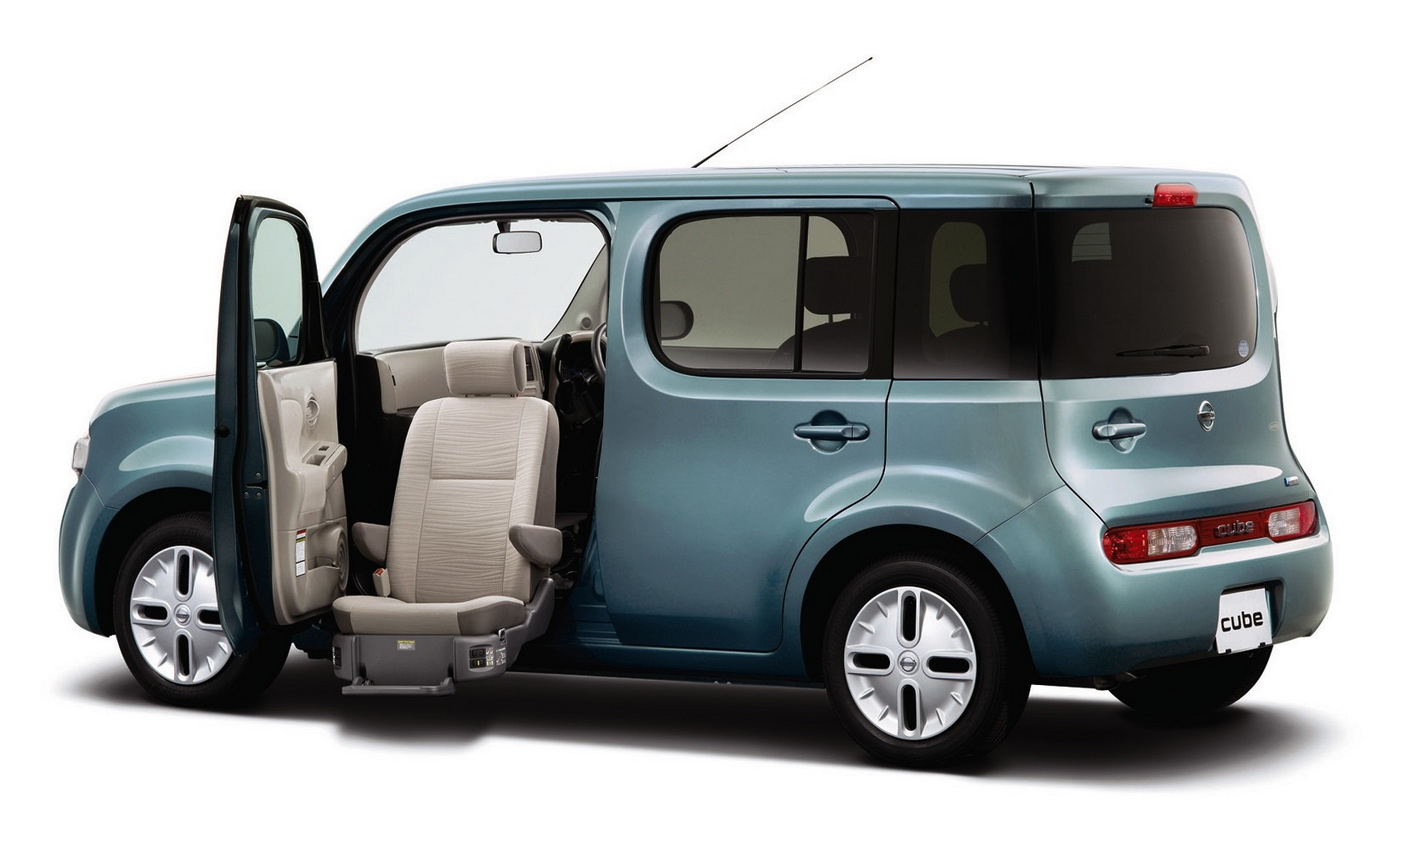 2010 nissan cube information and photos momentcar. Black Bedroom Furniture Sets. Home Design Ideas